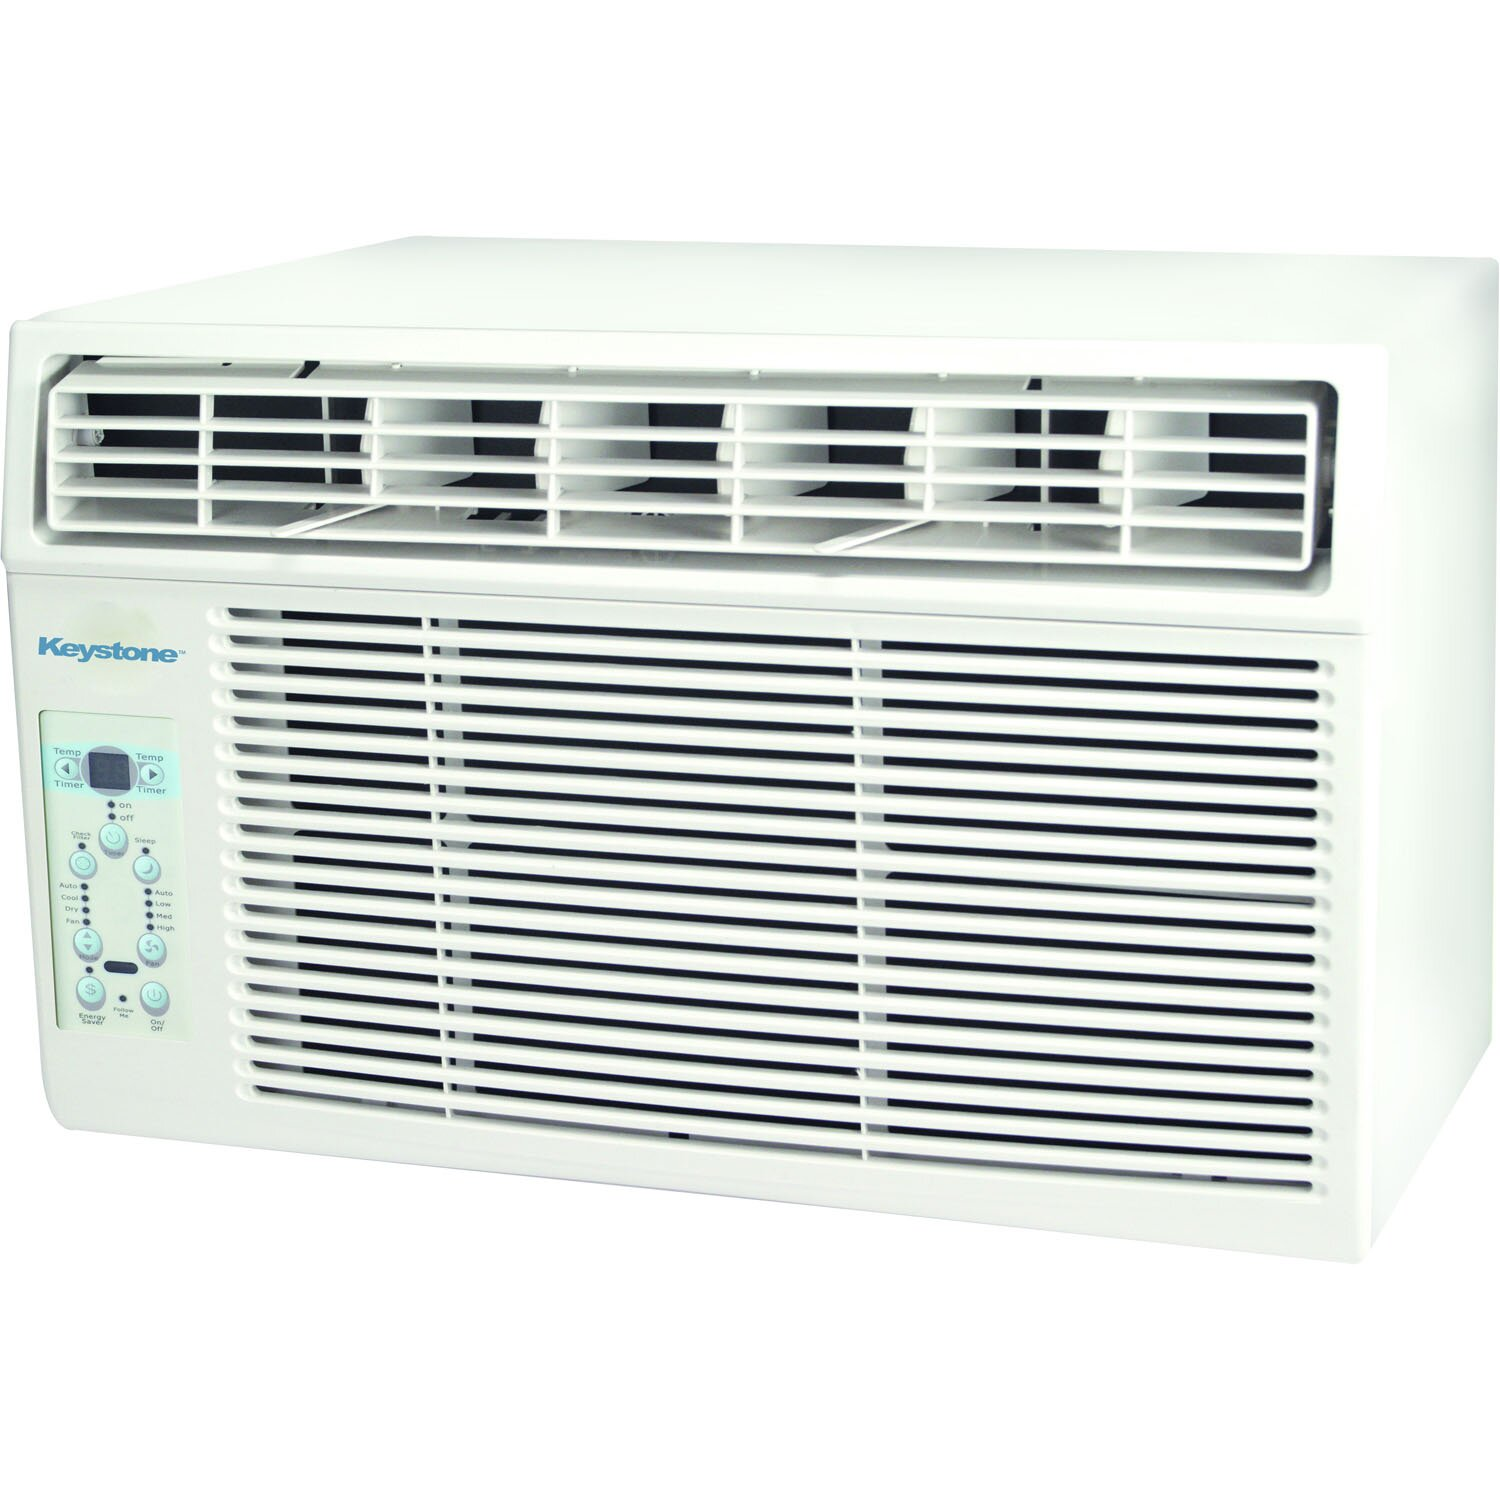 Keystone 12 000 btu window air conditioner with remote for 12 000 btu window air conditioner